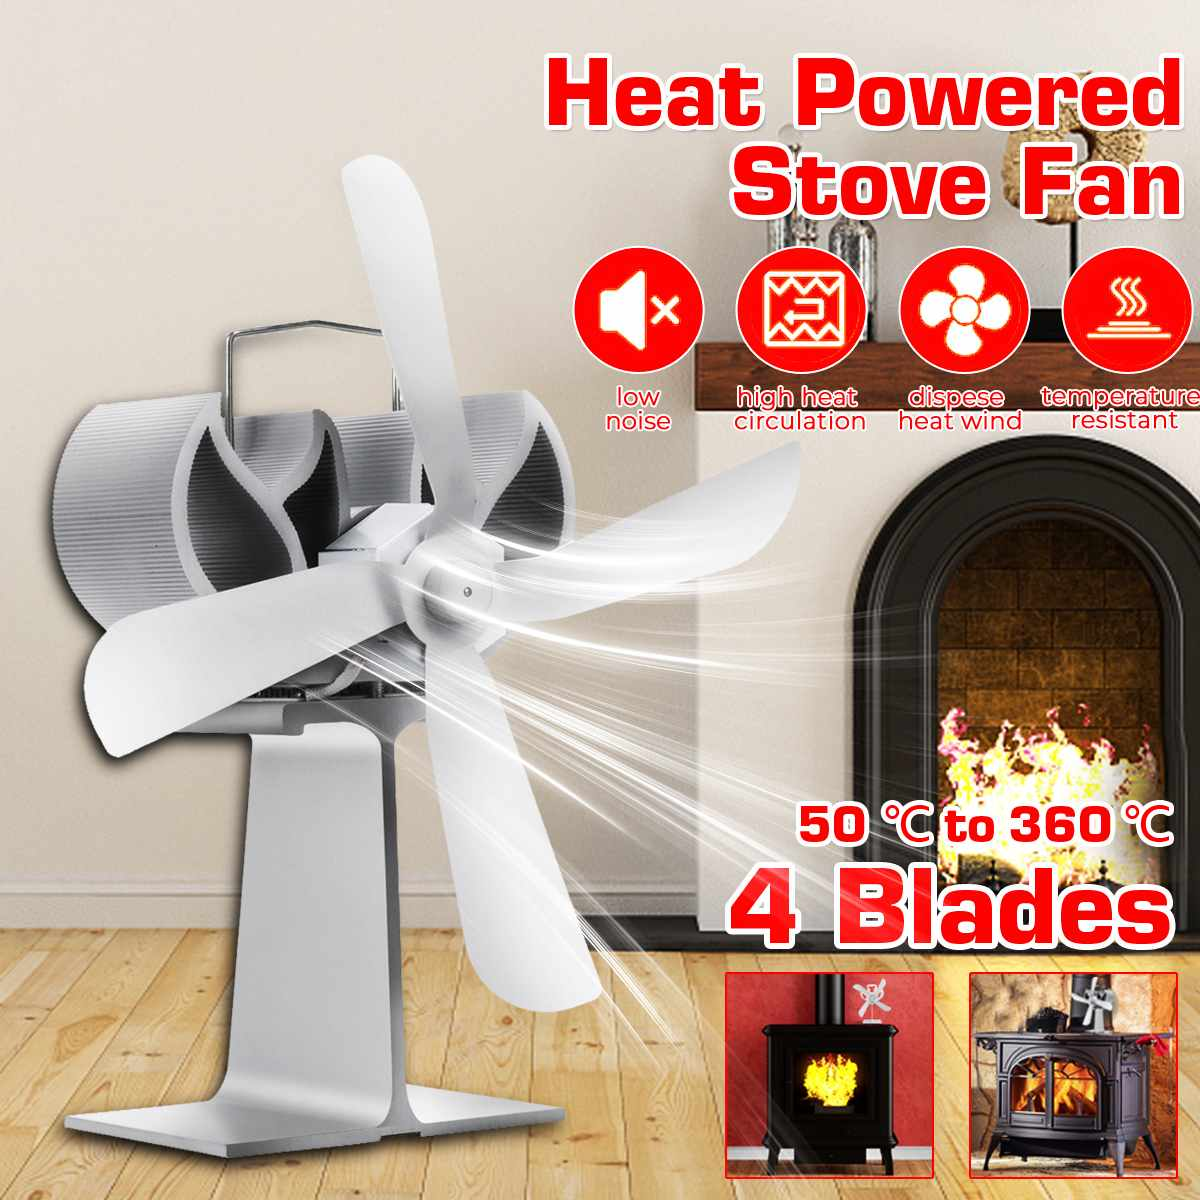 NEW White Stove Fan 4 Small Blade Fireplace Fan Heat Powered Wood Burner Eco Fan Friendly Quiet Home Efficient Heat Distribution